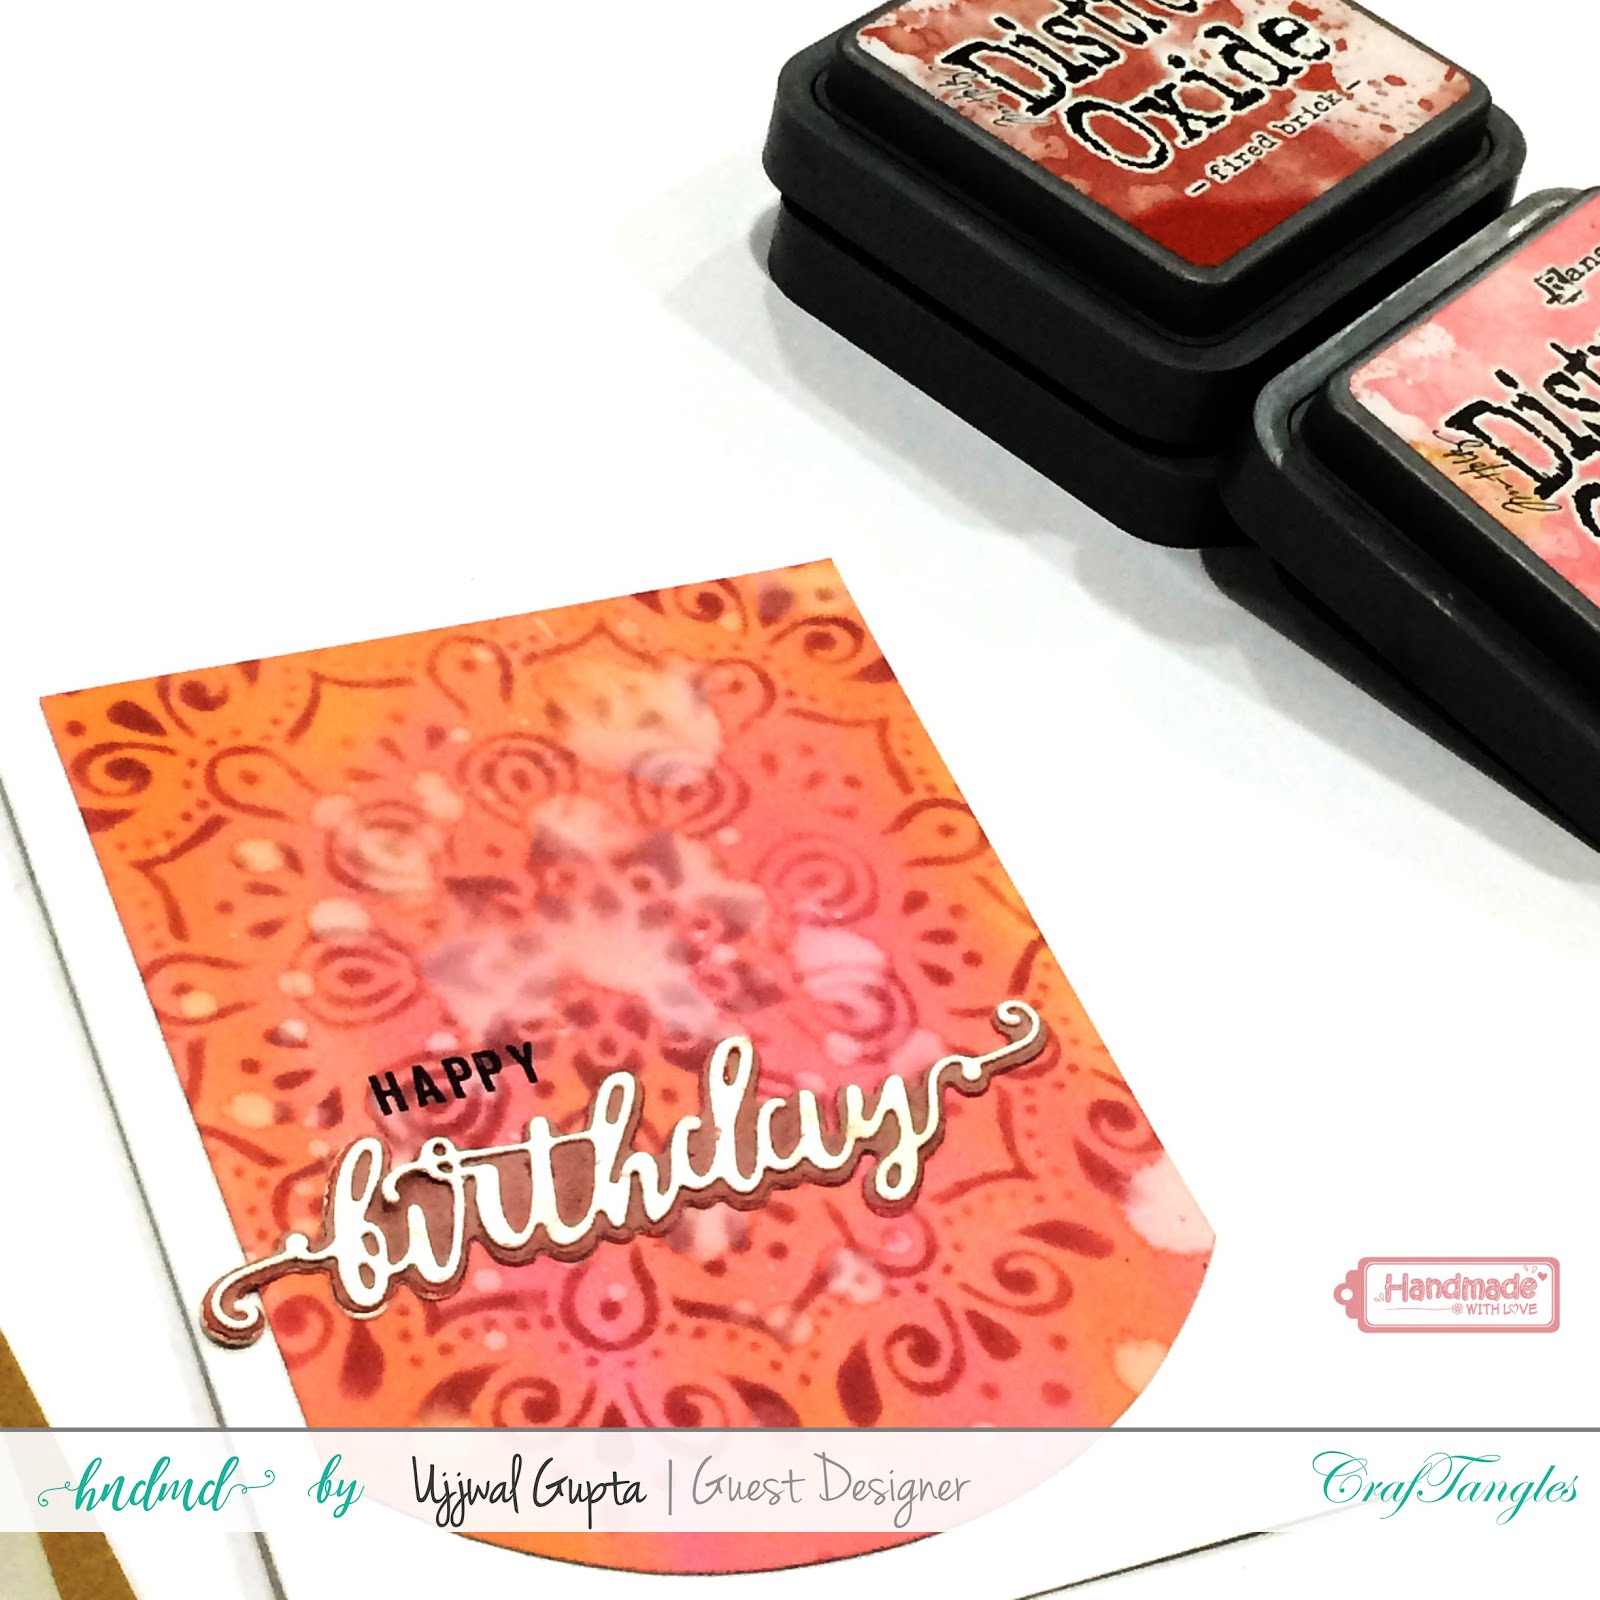 5 Cards using CrafTangles stamps and stencils 8